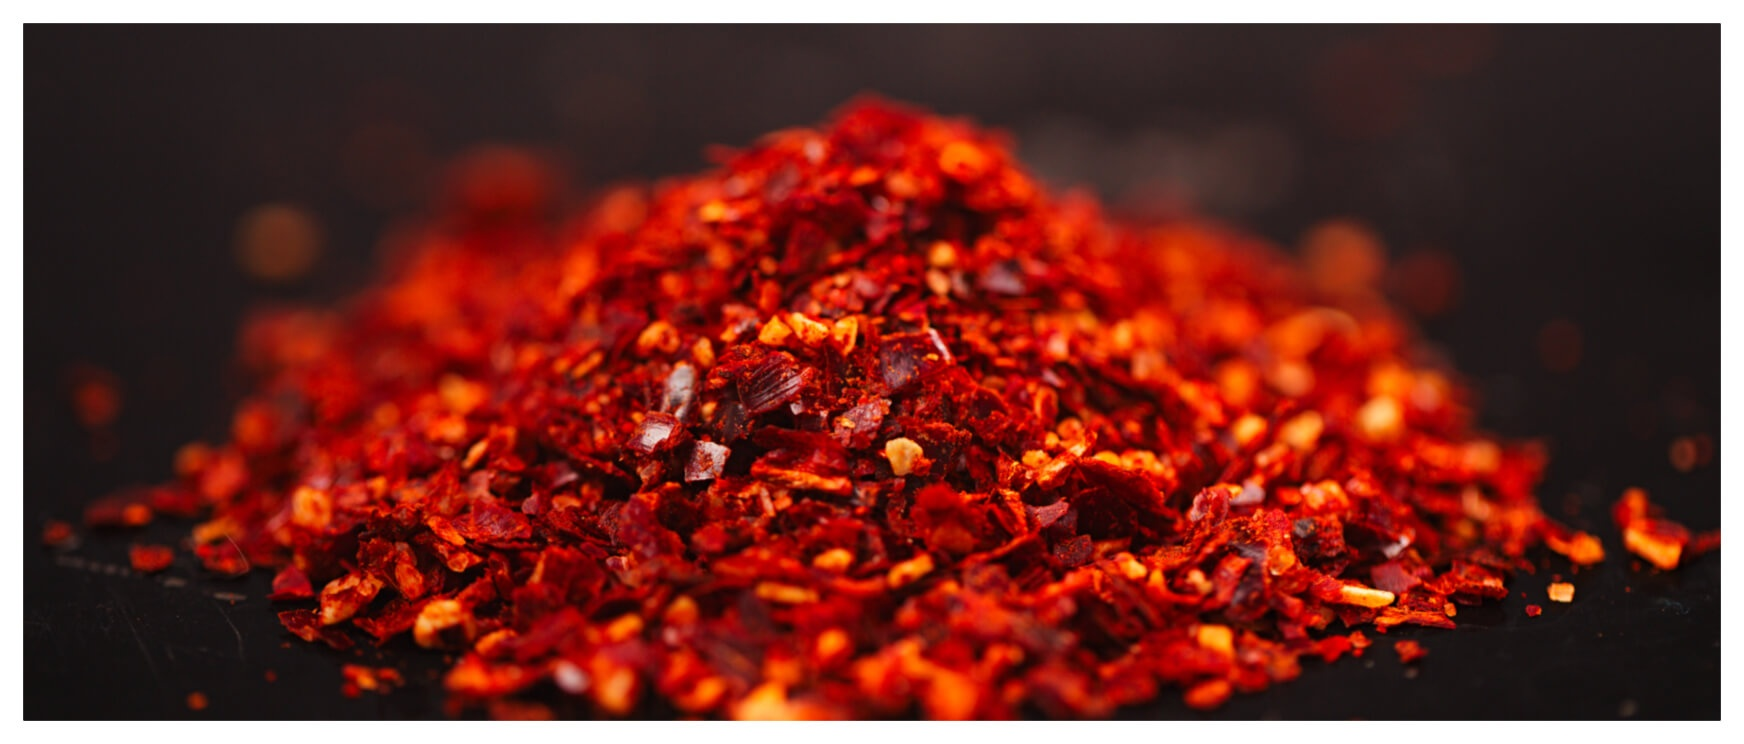 A Globally Recognised Premium Spice Brand Distributing to Leading Retail Outlets and Online